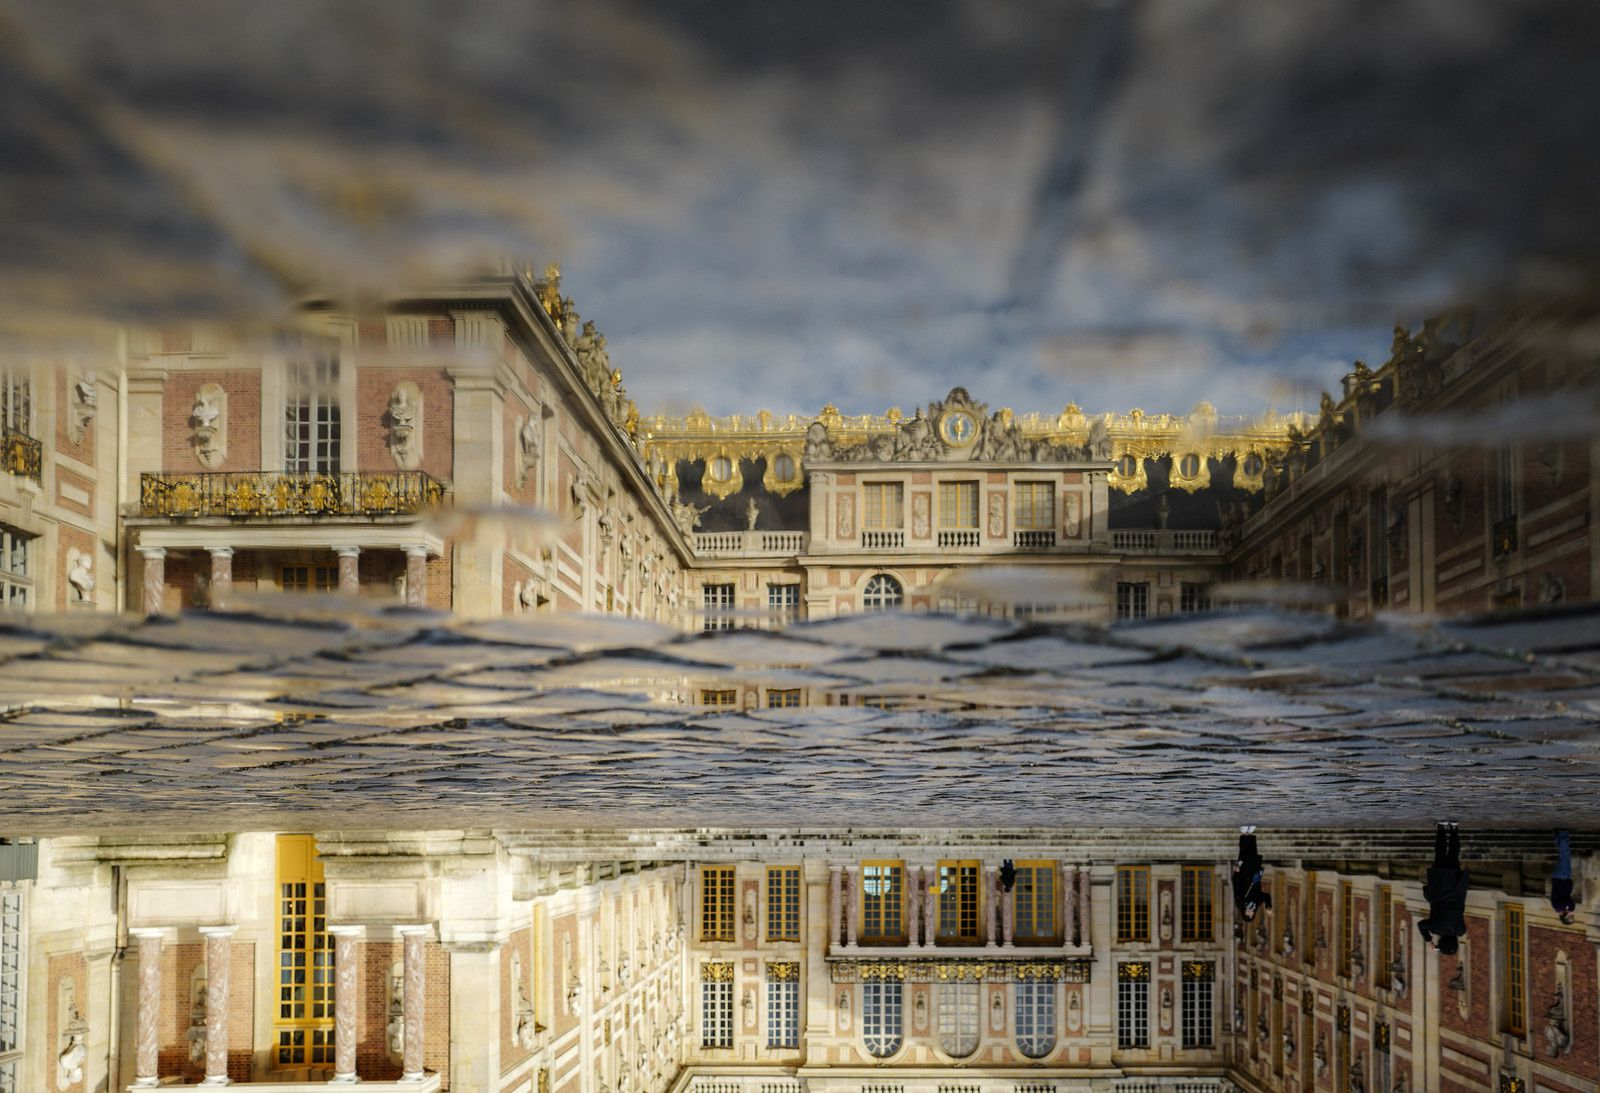 """Installation au Chateau de Versailles"", 2016 d'Olafur Eliasson. Photo: Anders Sune Berg - Courtesy of the artist&#x3B; neugerriemschneider, Berlin&#x3B; Tanya Bonakdar Gallery, New York"